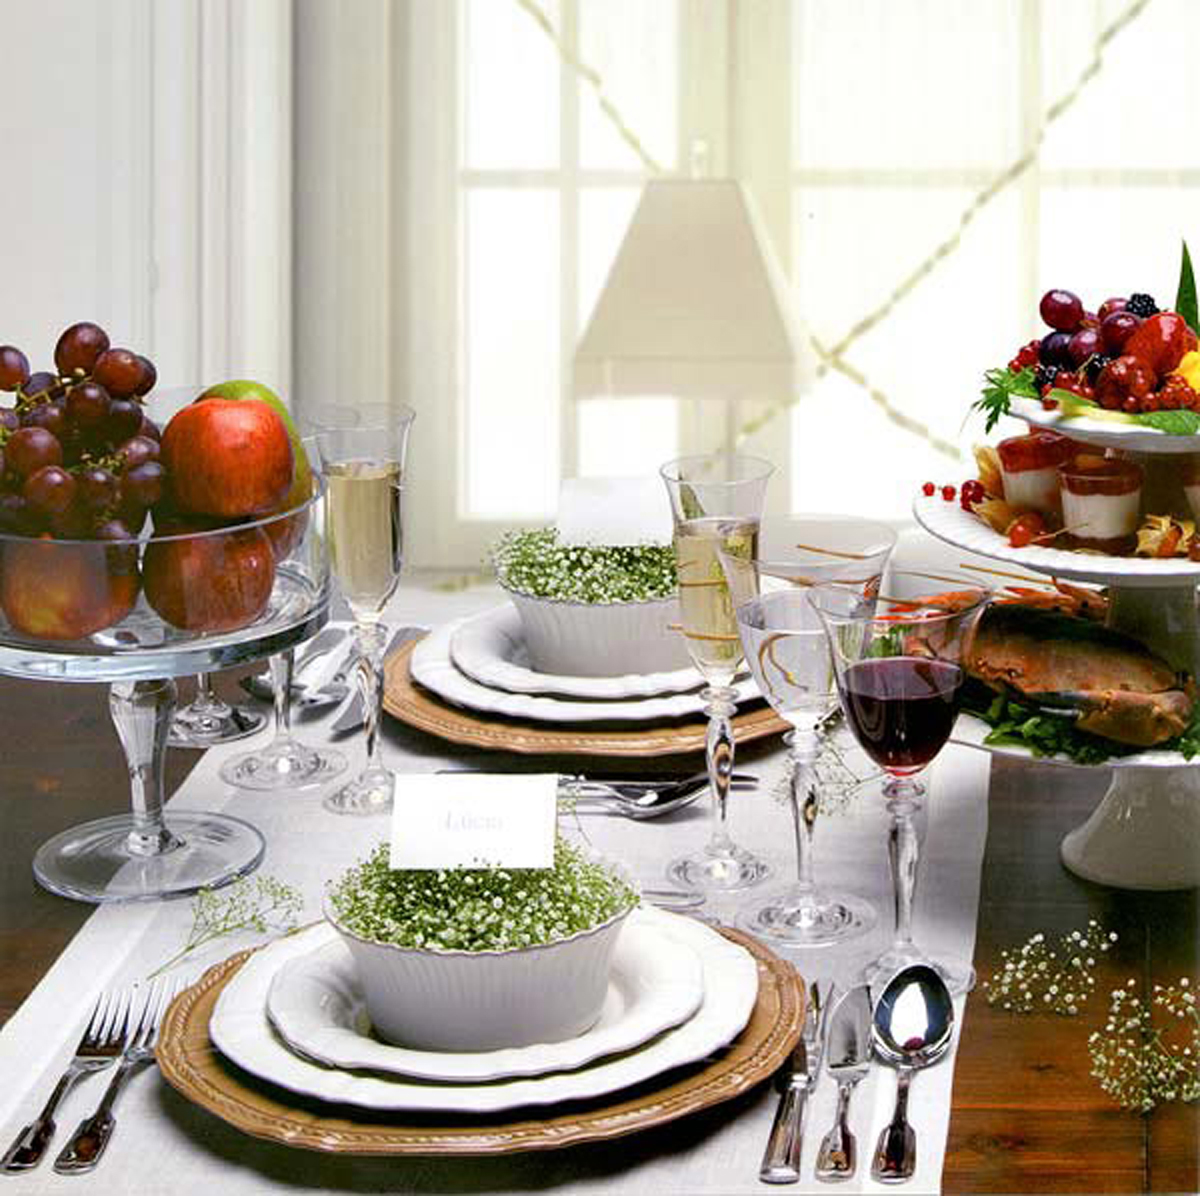 Natural dining table decor for christmas 2010 for Table decorations for dining table